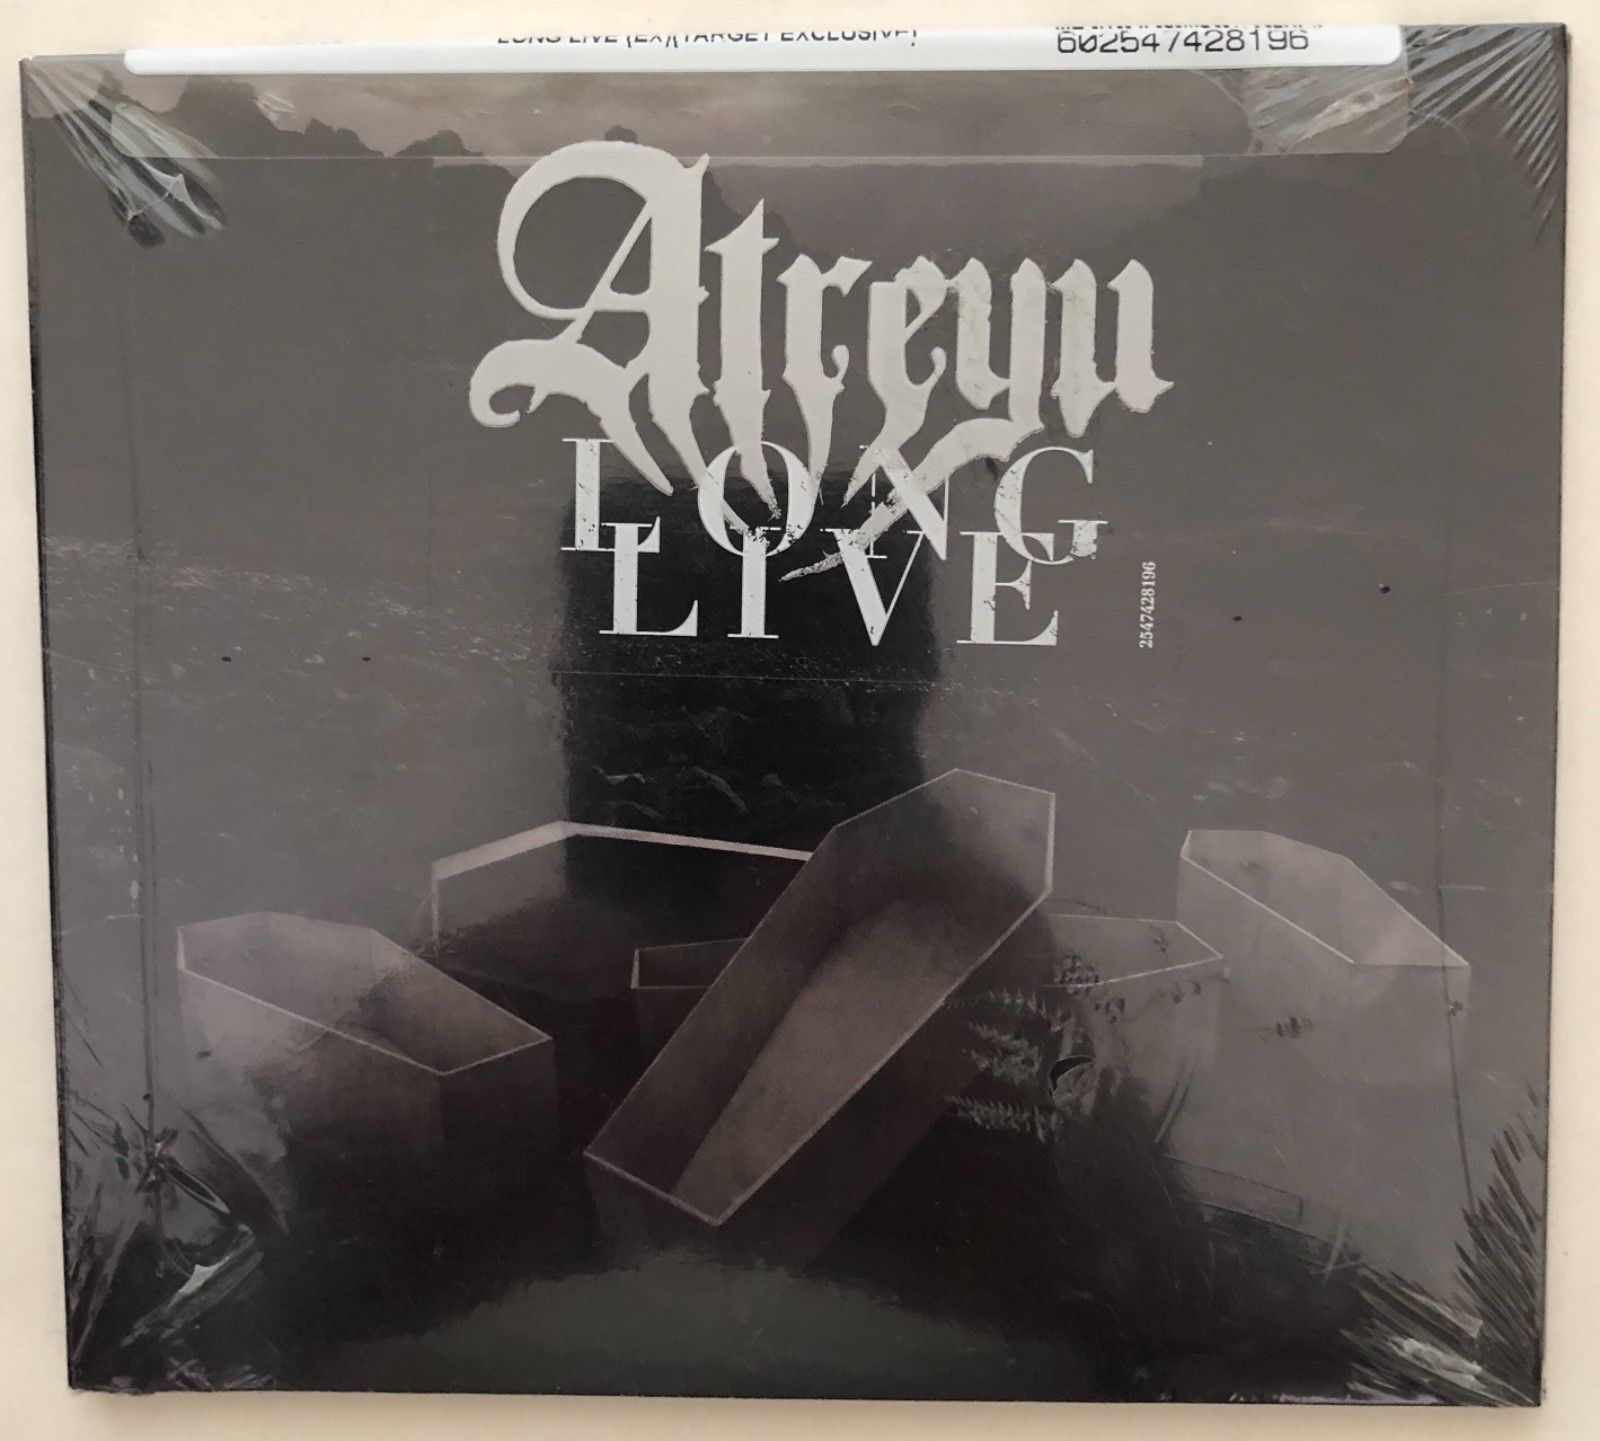 Primary image for Atreyu 'Long Live' Exclusive Limited Edition Bonus Tracks CD (2015) Brand New